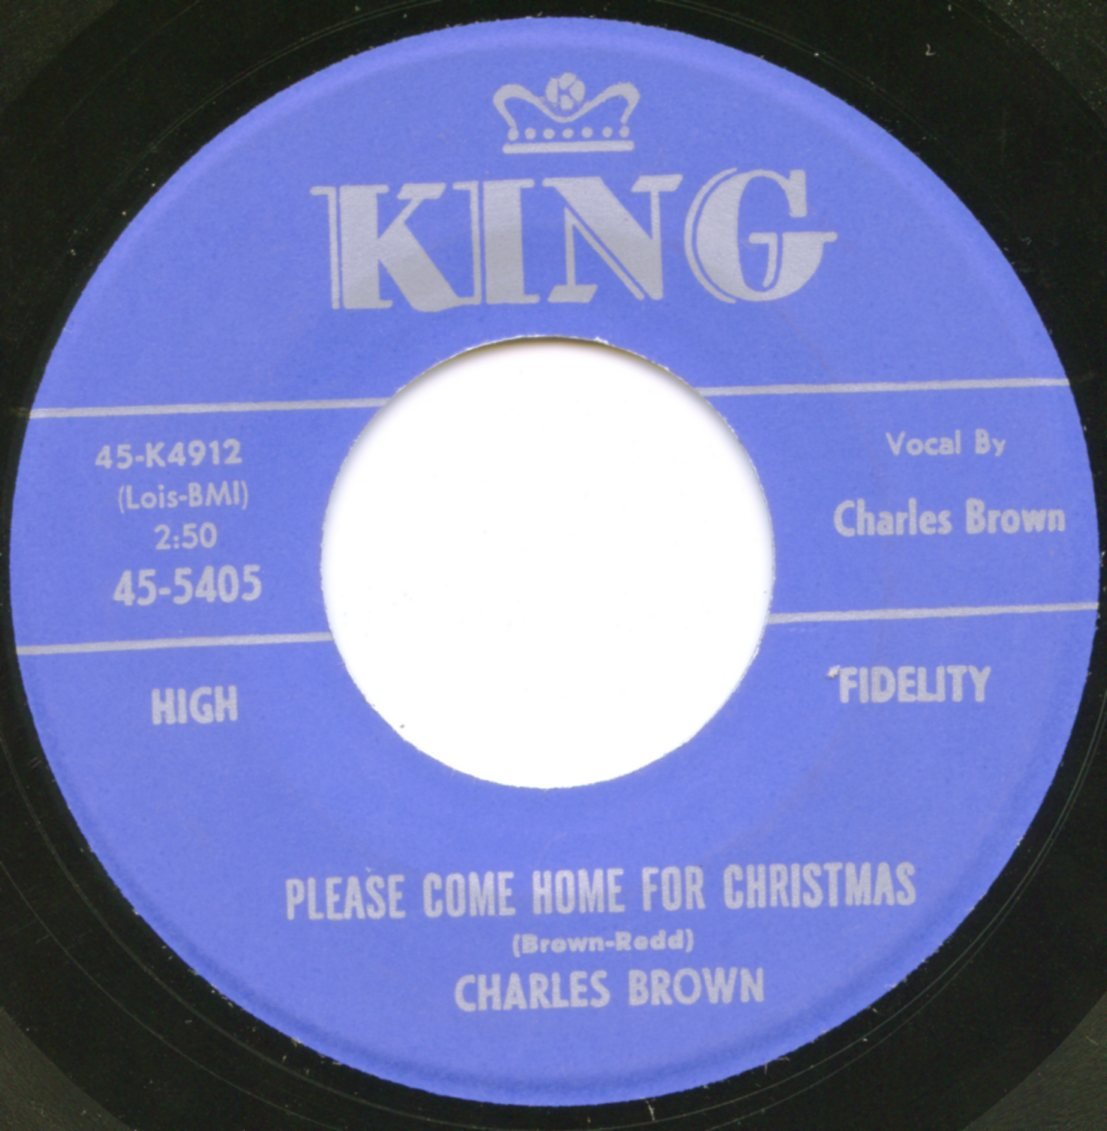 Charles brown please come home for christmas - Charles Brown Amos Milburn Please Come Home For Christmas Christmas Comes But Once A Year Amazon Com Music